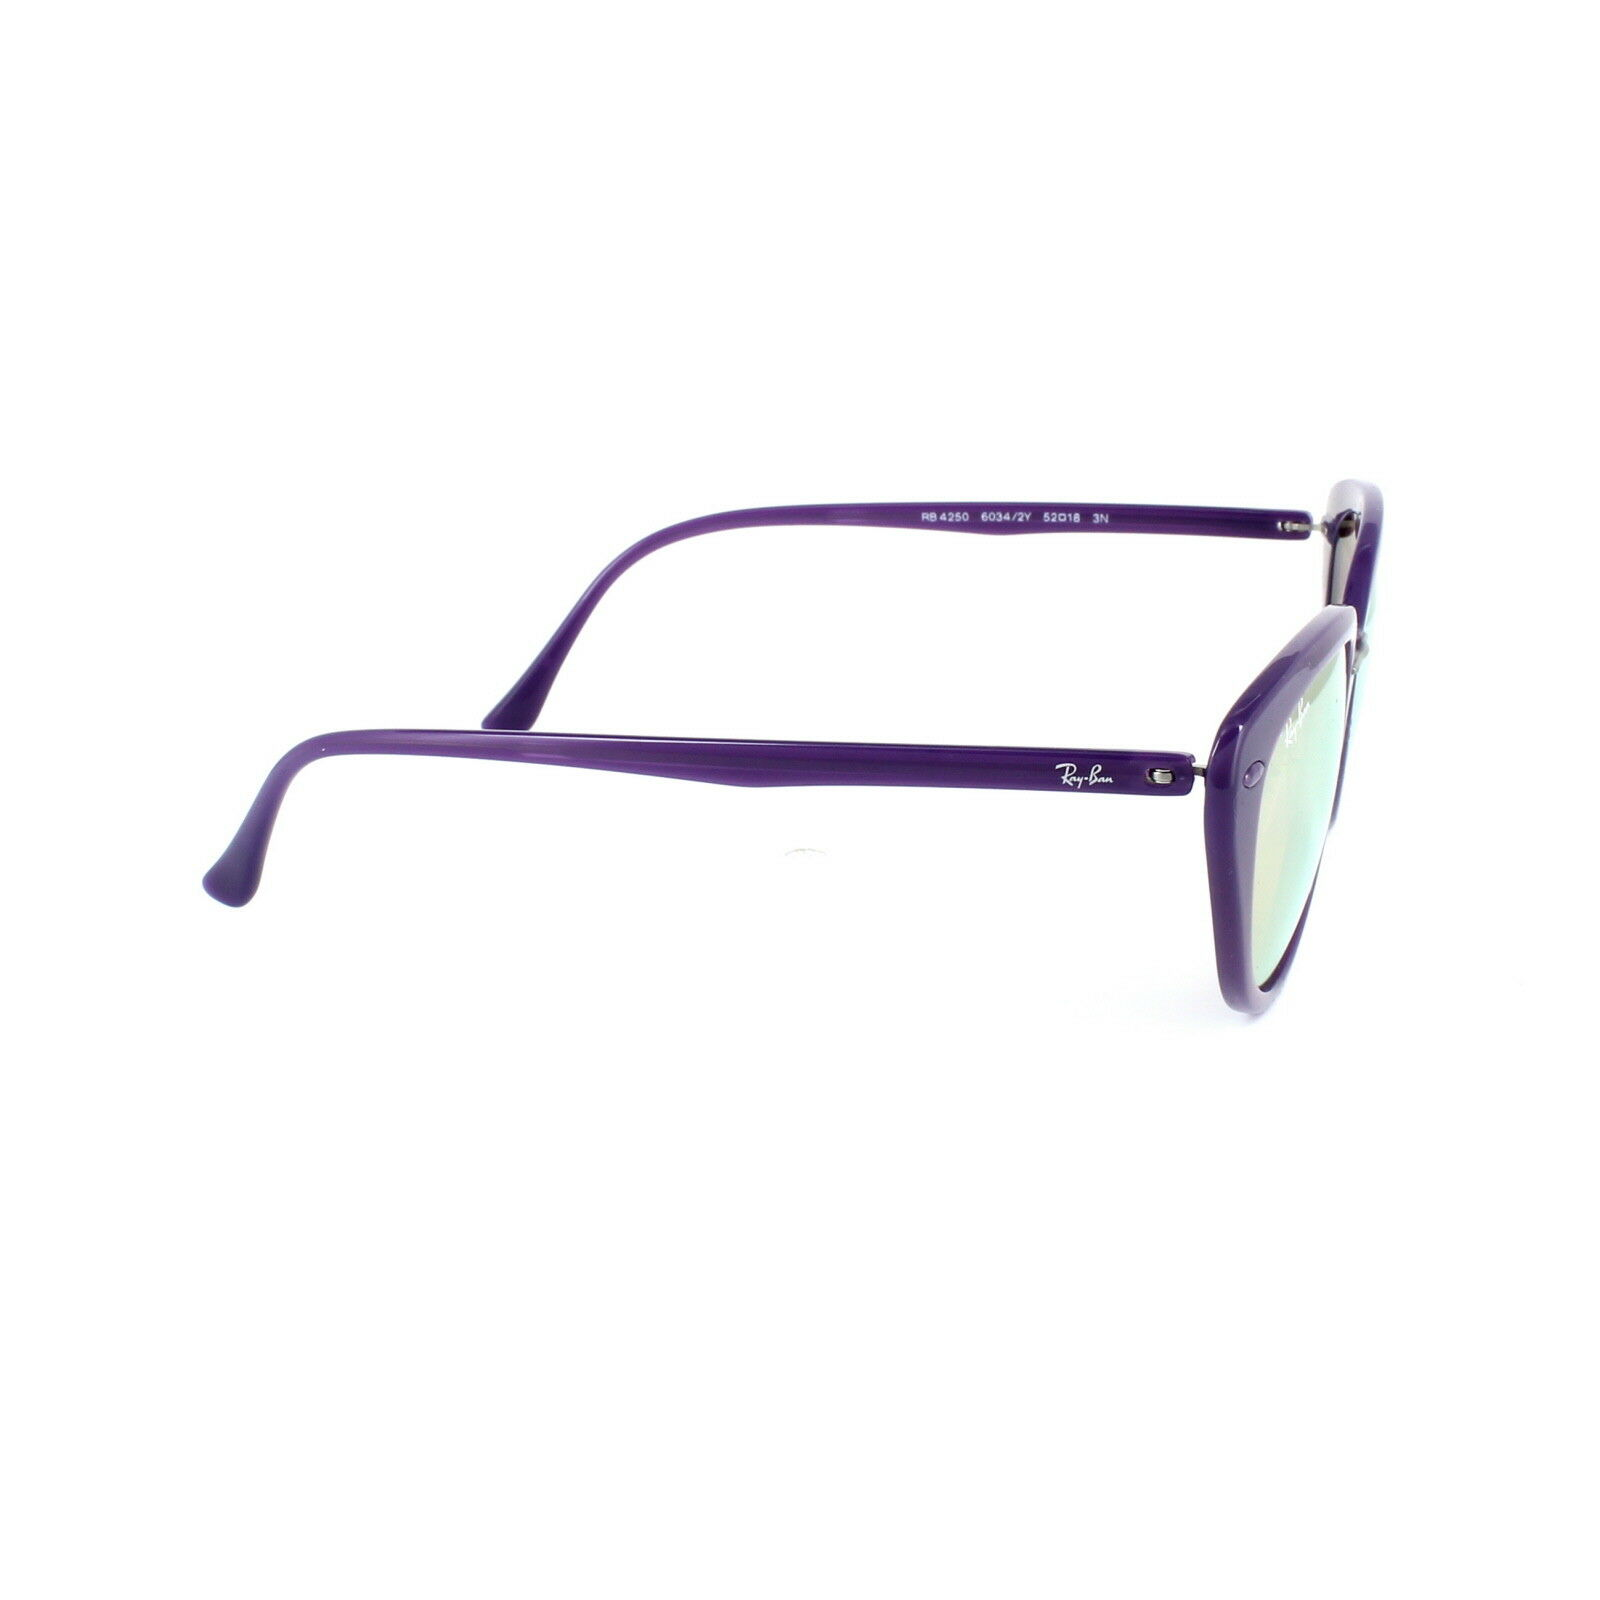 81e5a40a1ad Sunglasses Ray-Ban Tech Light Rb4250 6034 2y 52 Shiny Violet for sale online